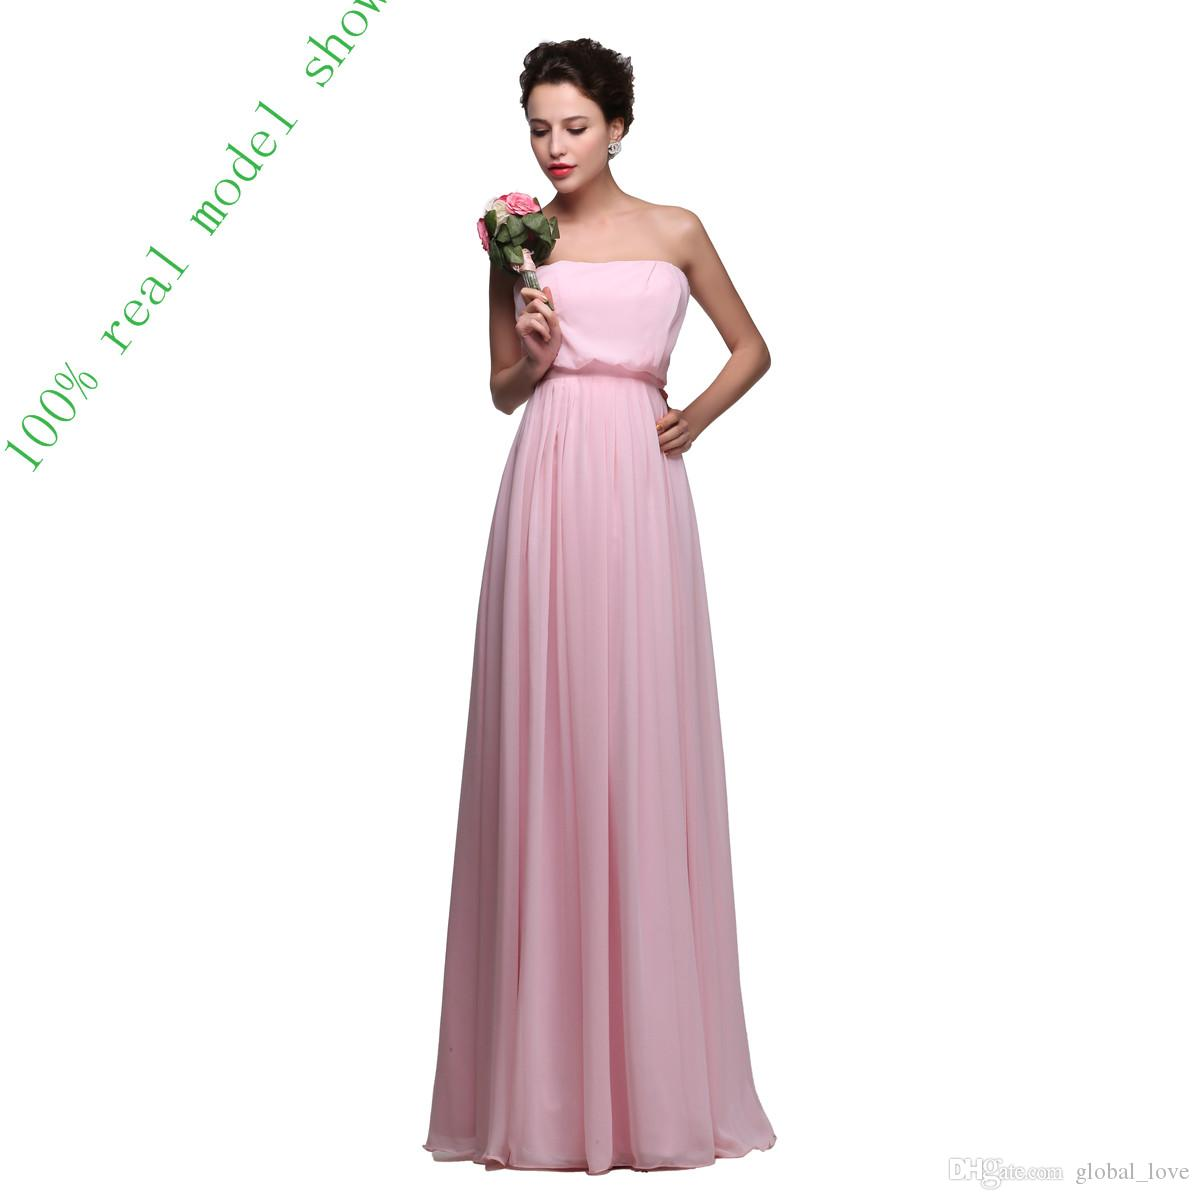 Hot pink bridesmaid dresses under 100 best ideas dress hot pink bridesmaid dresses under 100 hd gallery ombrellifo Gallery